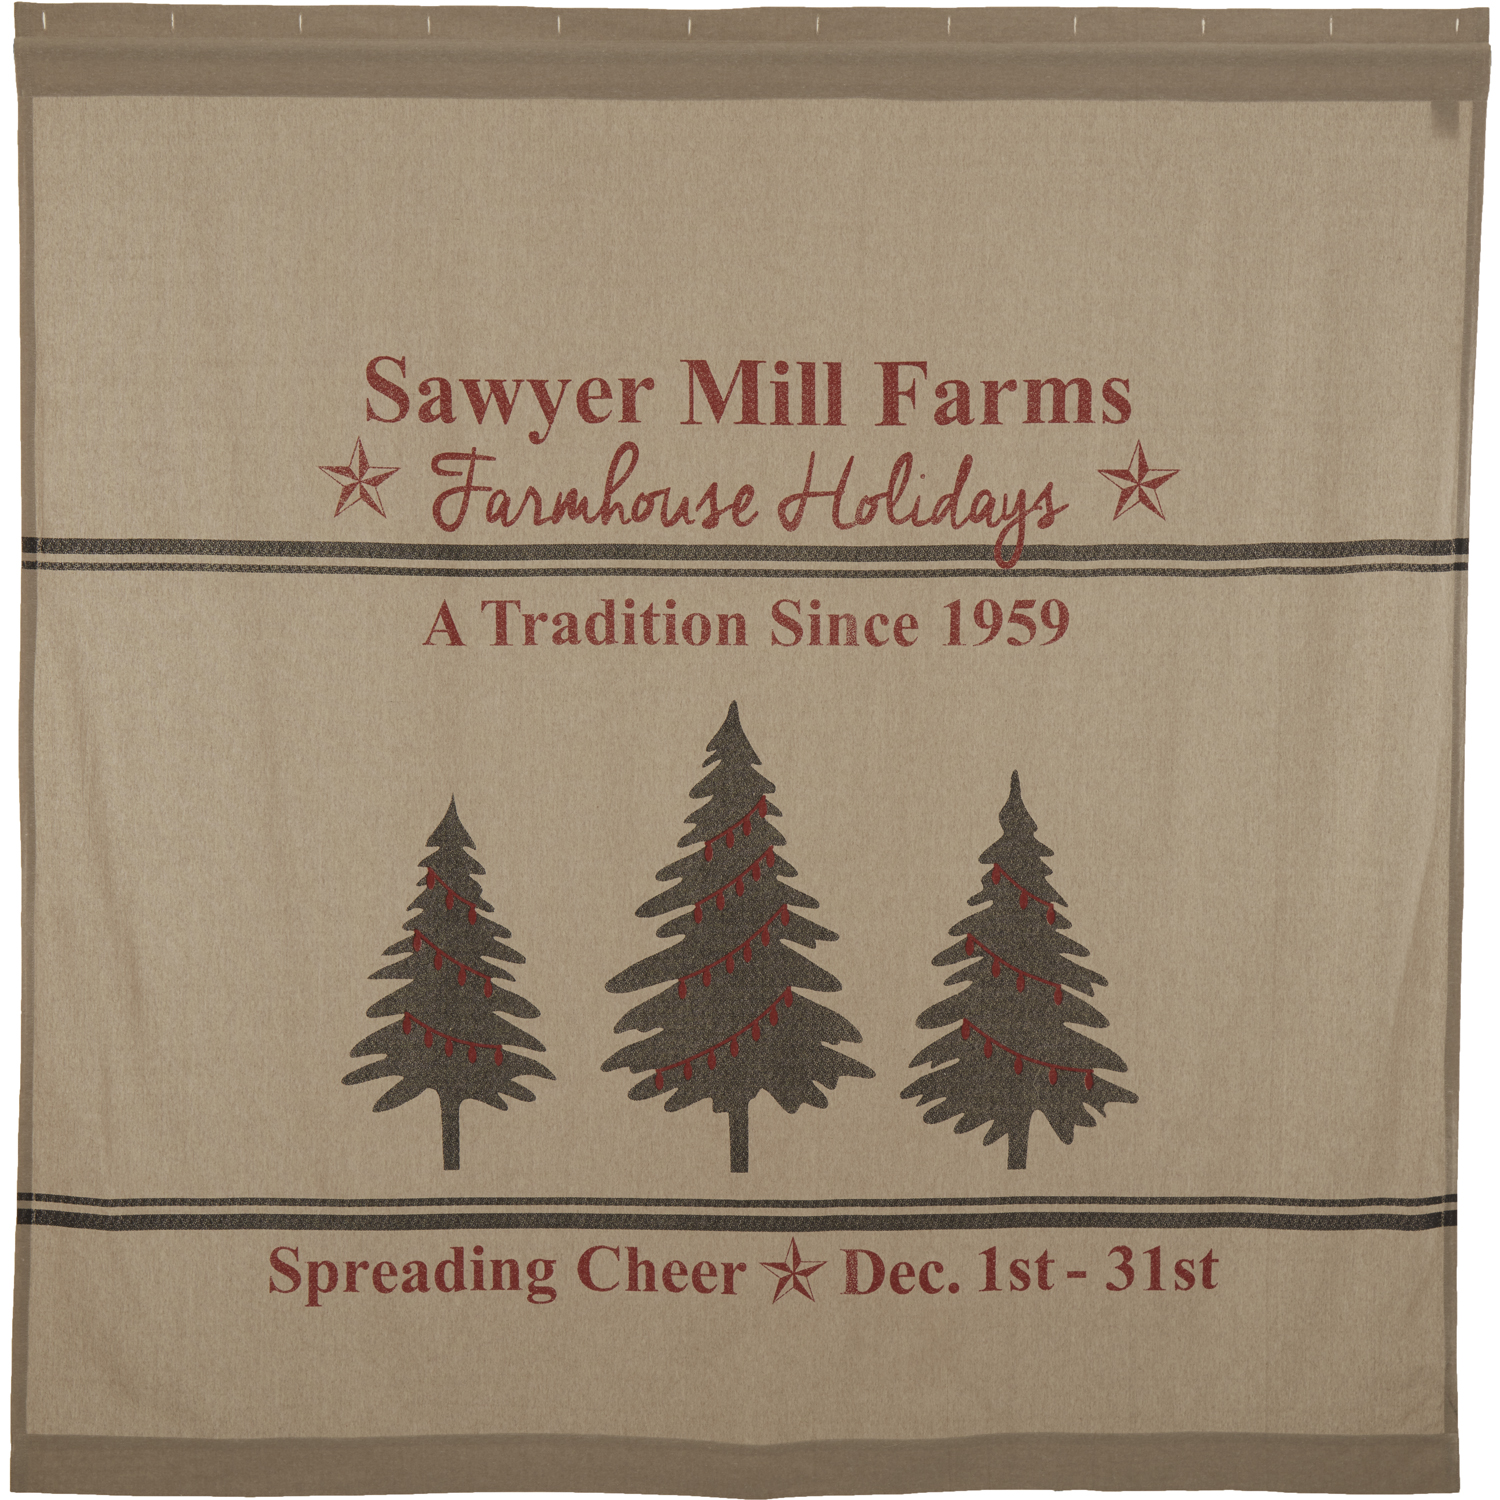 Sawyer Mill Holiday Tree Shower Curtain 72x72